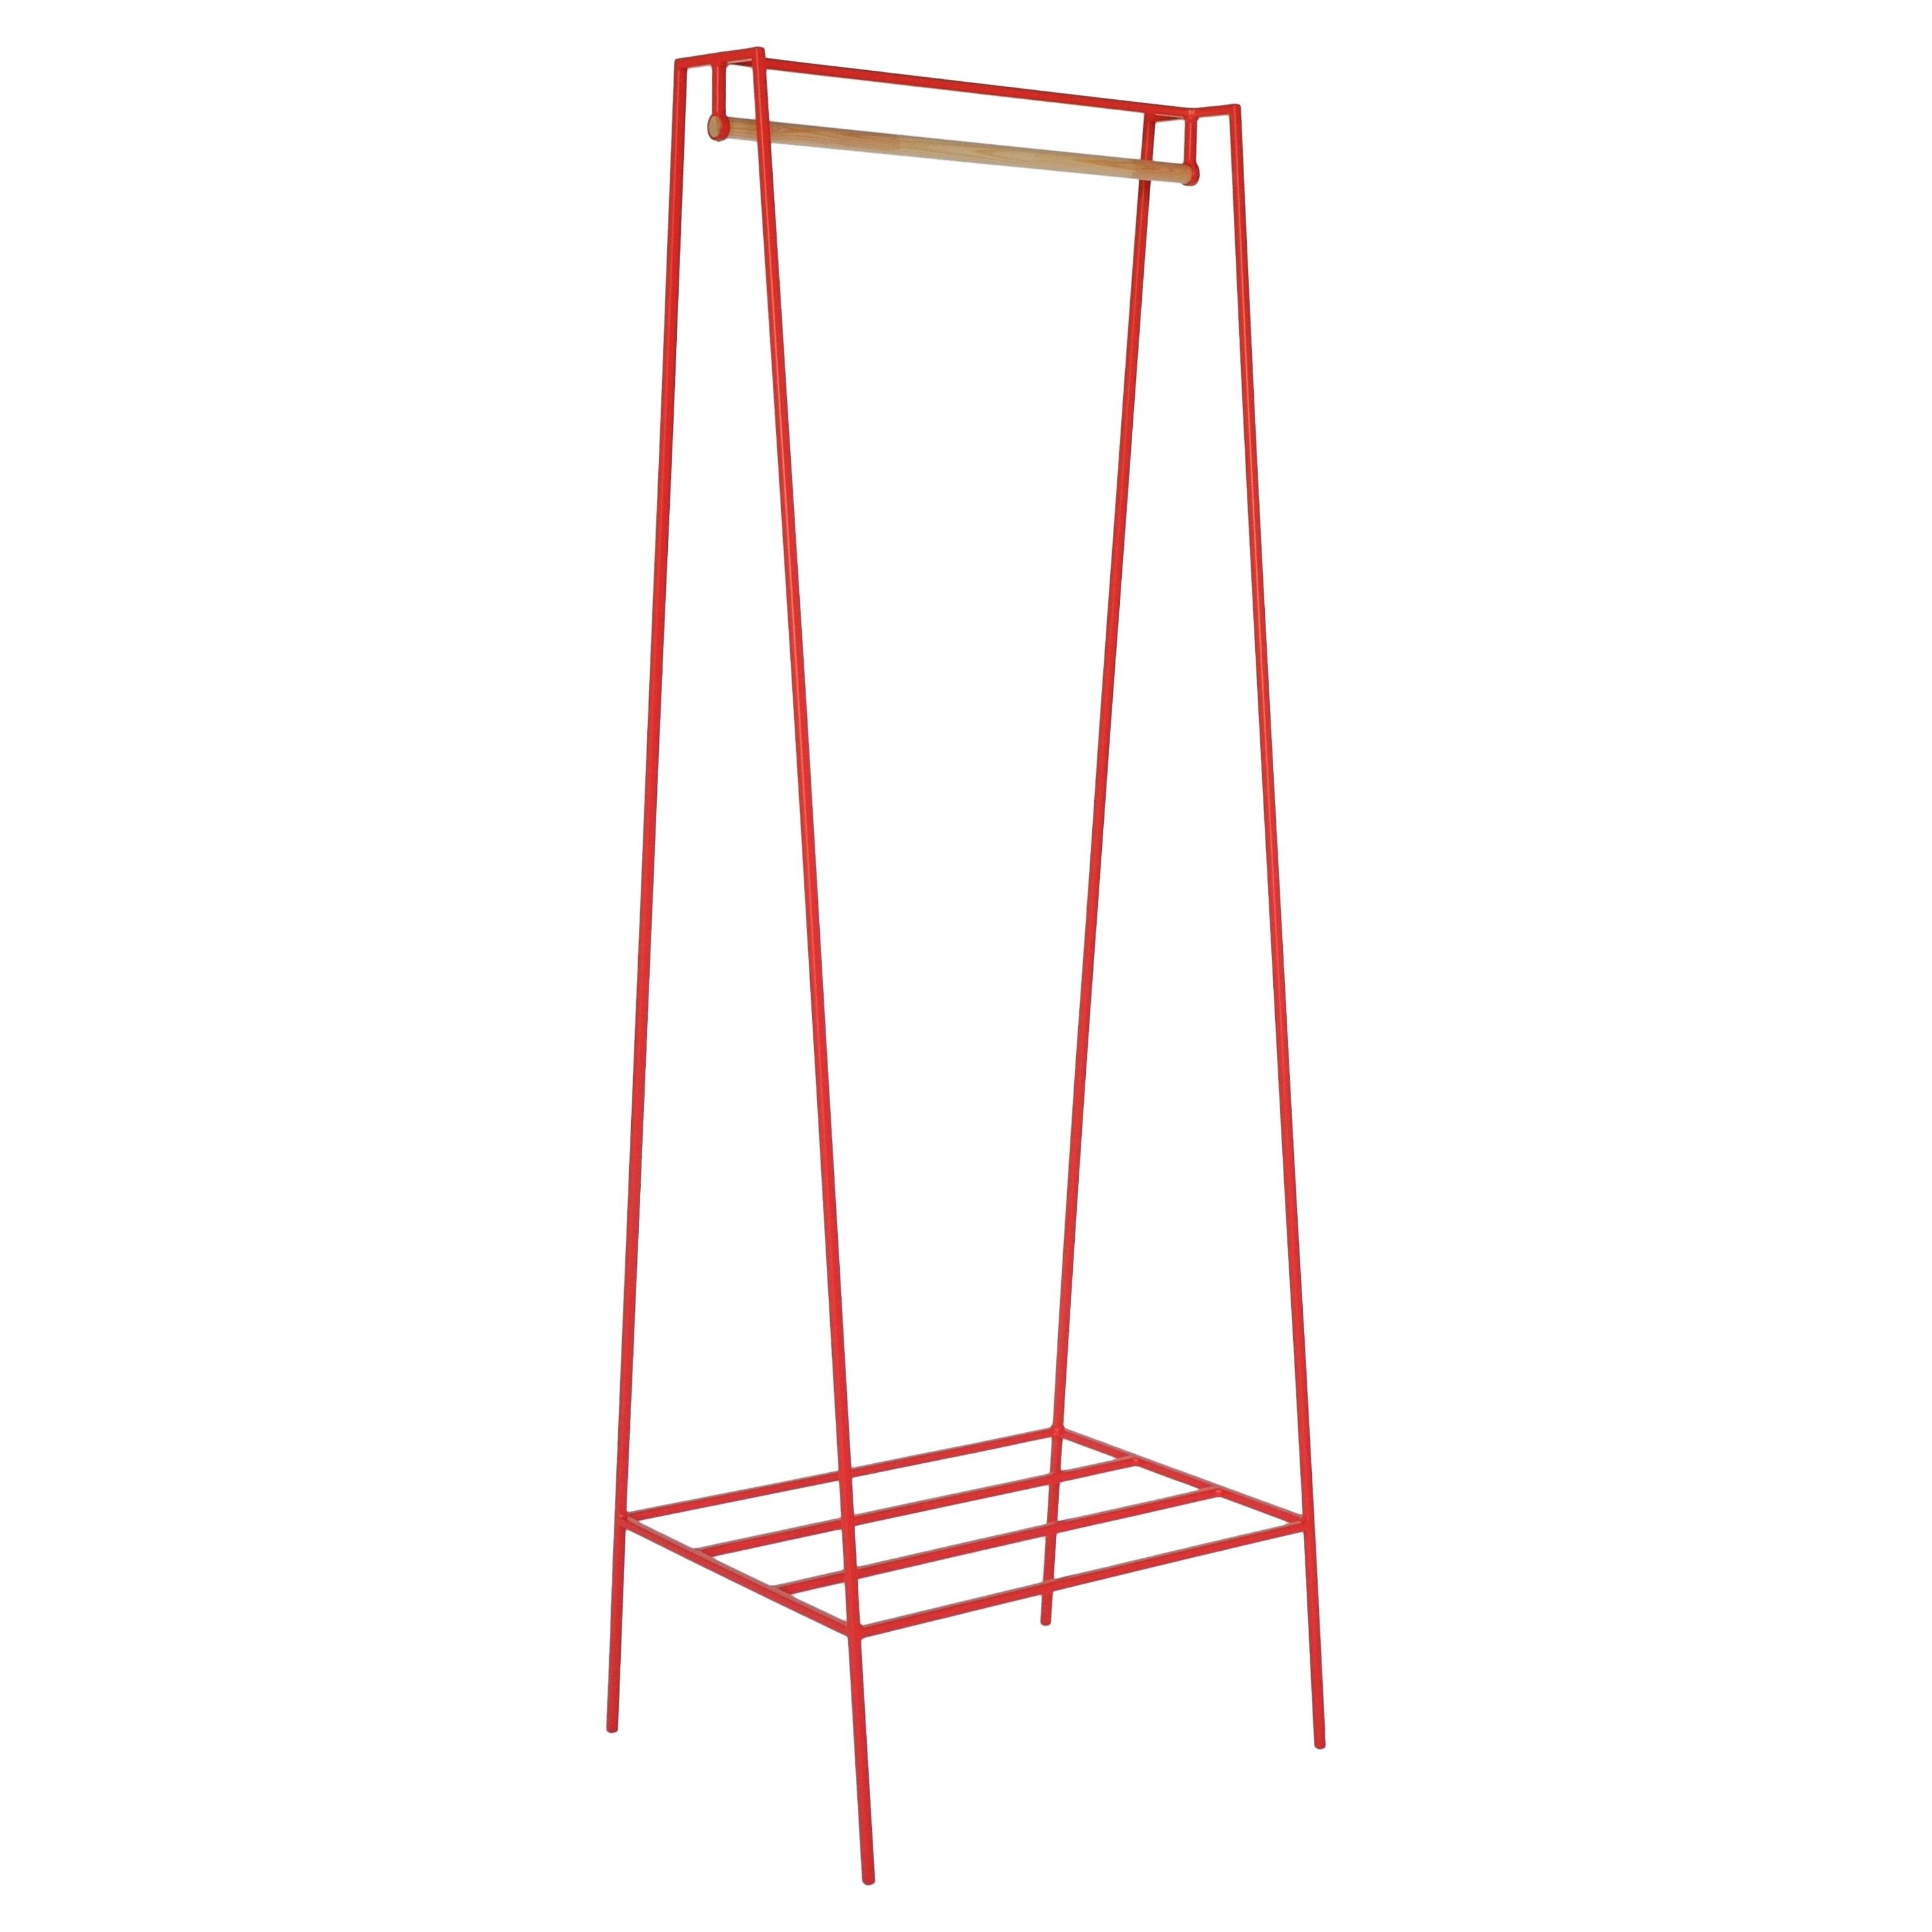 'A' Clothes Rail in Red with a Pine Pole